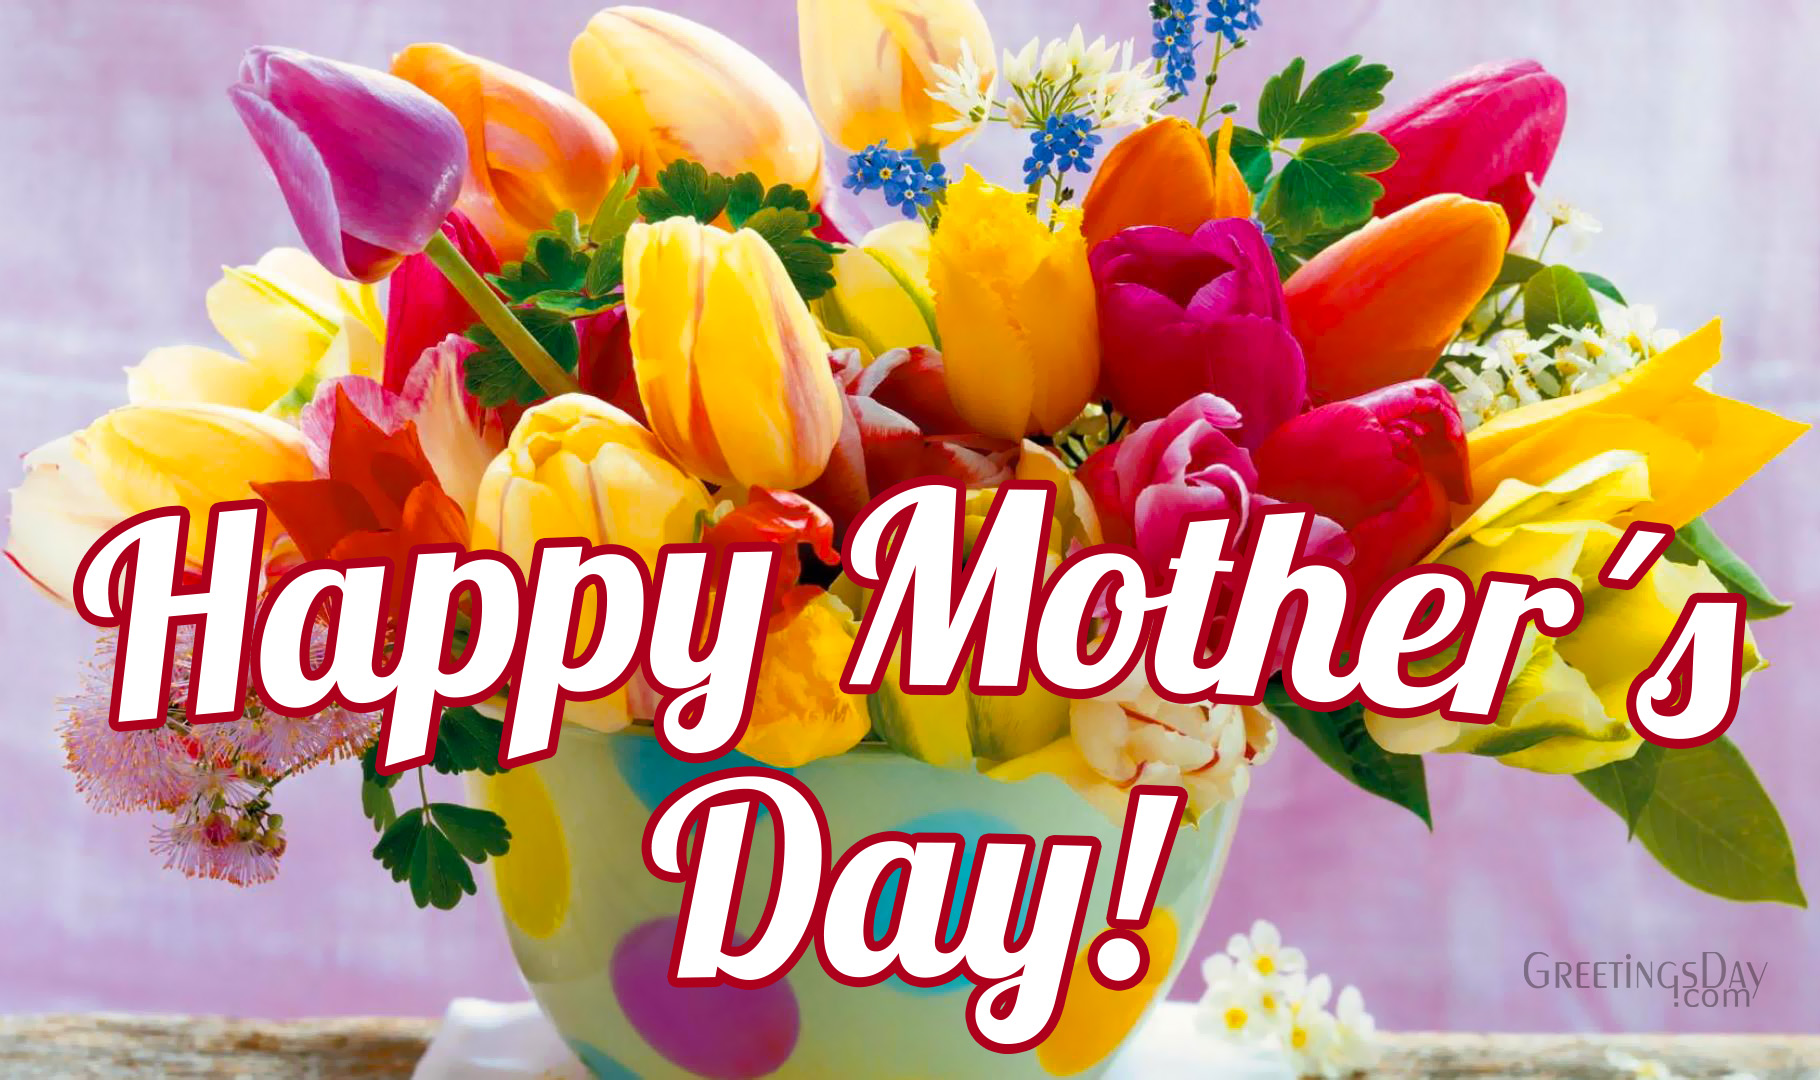 Happy Mother's Day – Online Cards, Photos and Wishes.